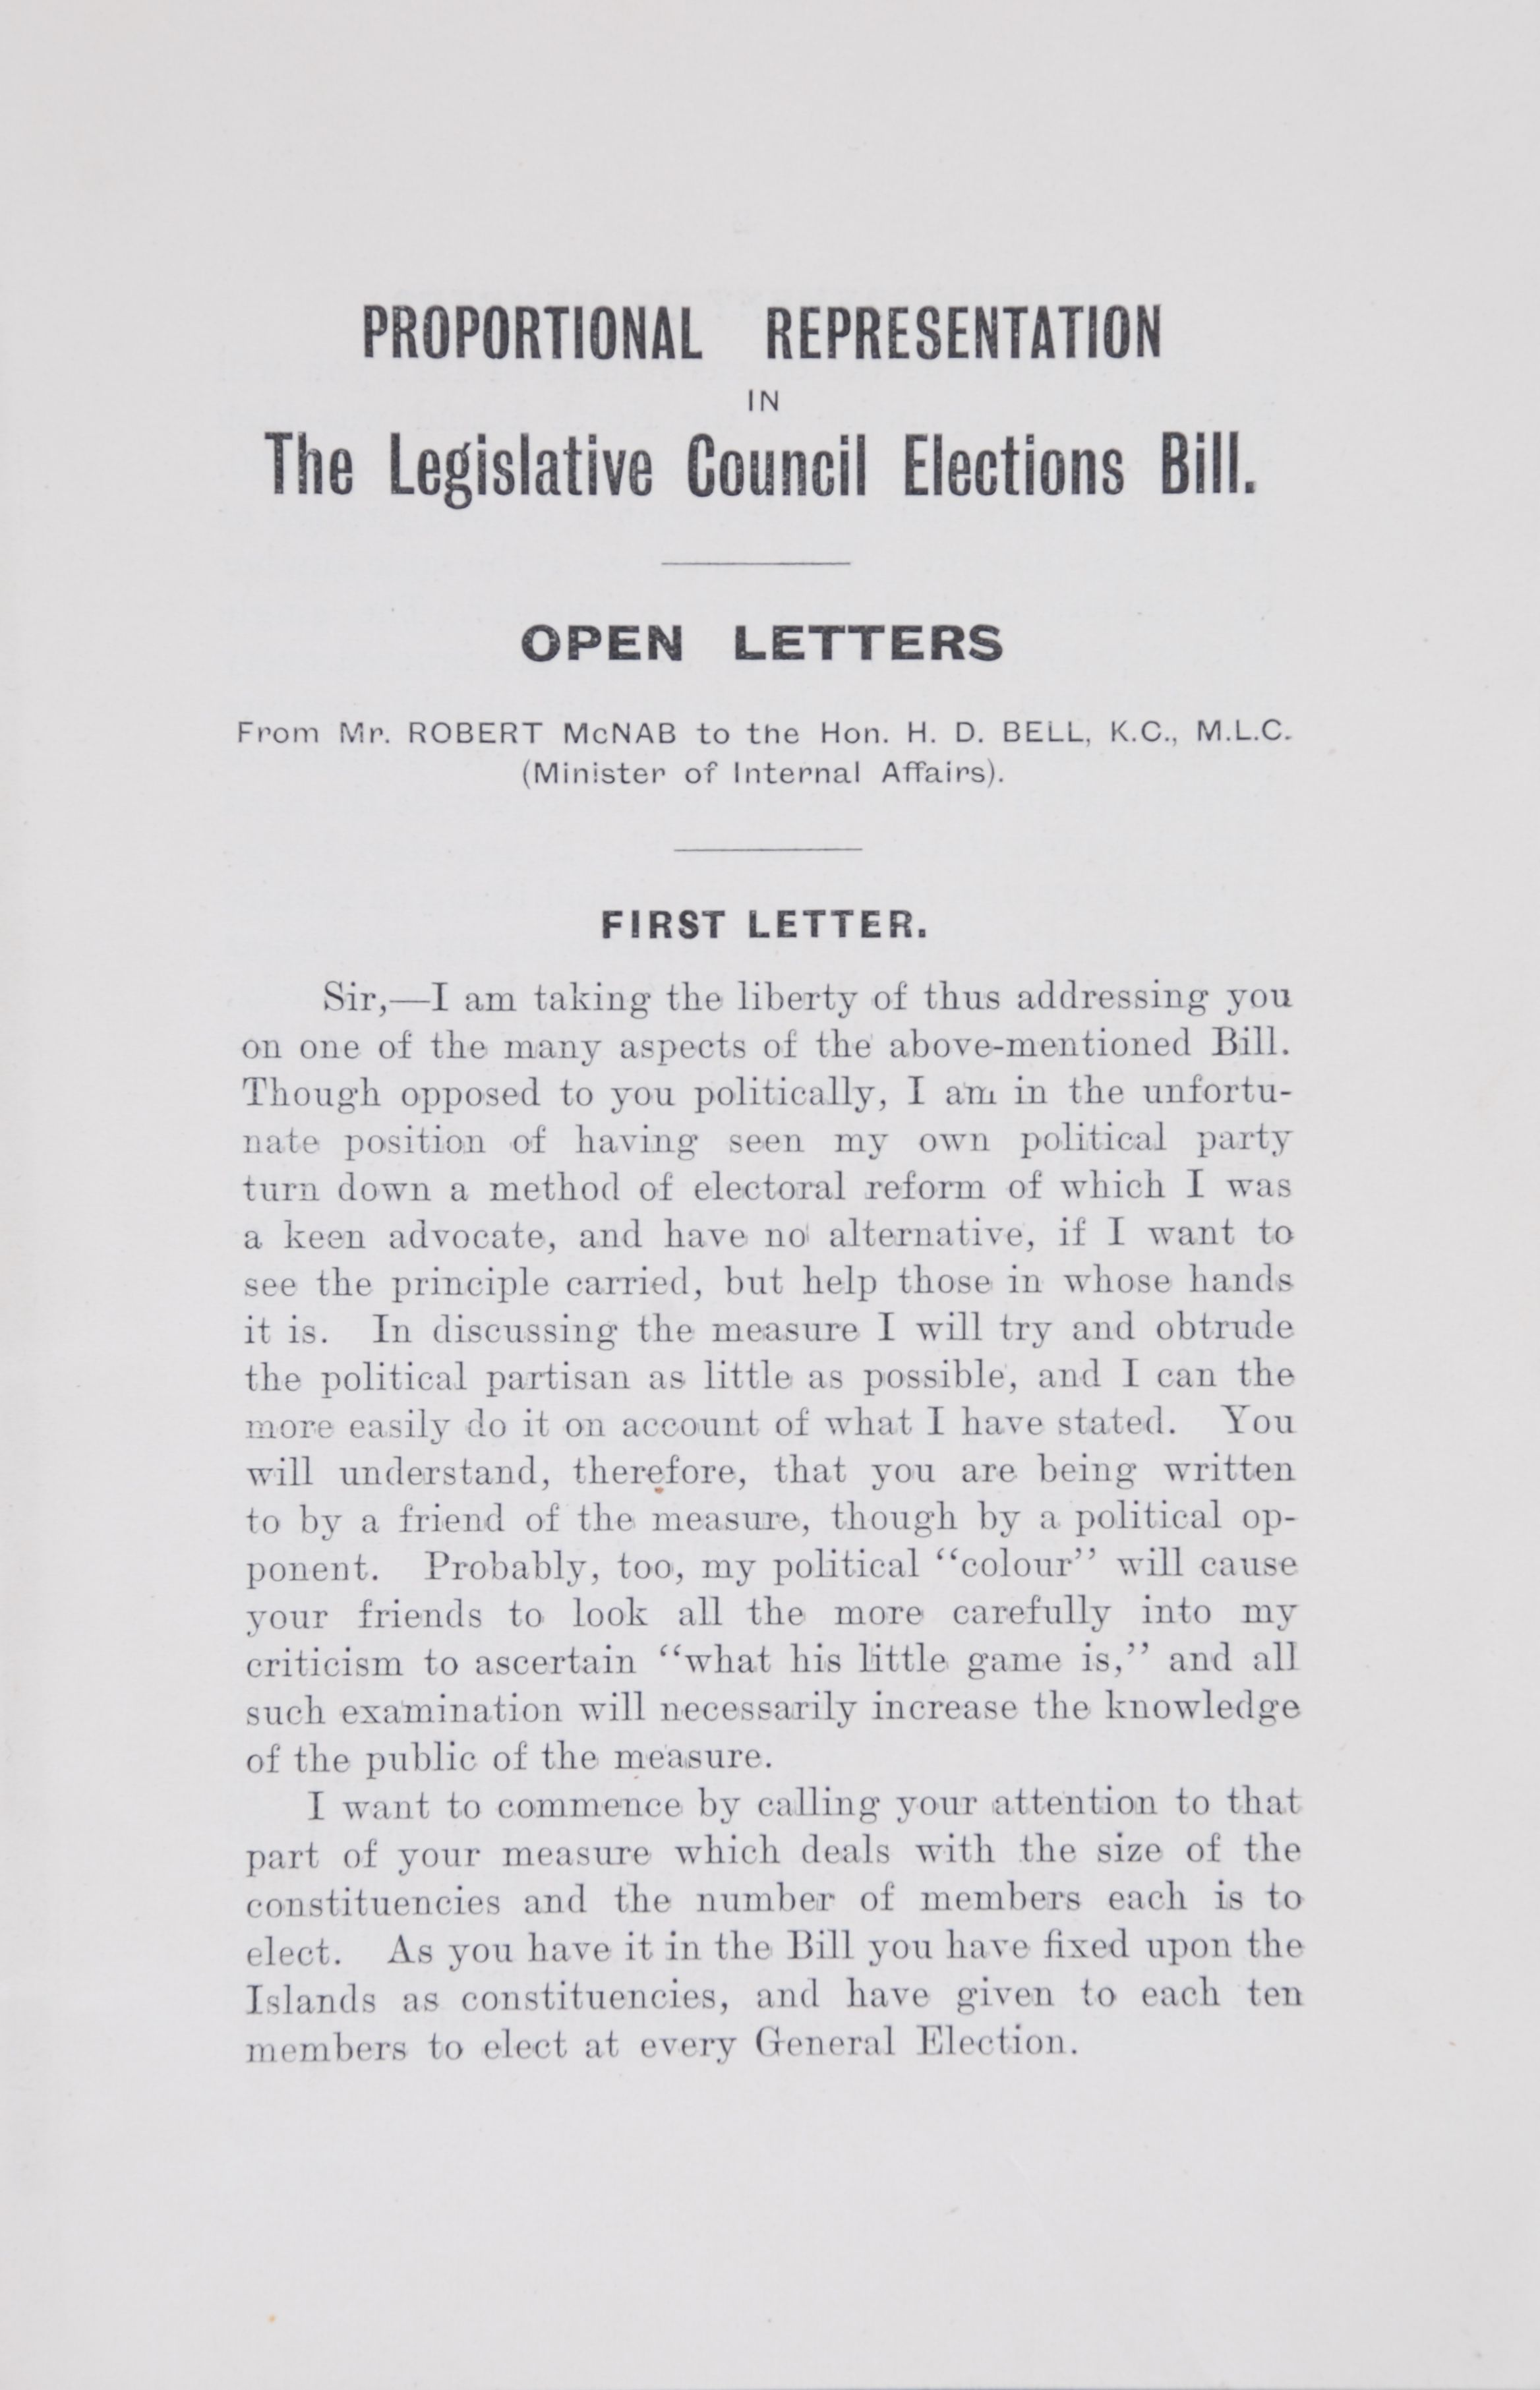 Robert McNab. Open Letters on Proportional Representation.  Wellington: Whitcombe & Tombs, Printers, 1913.